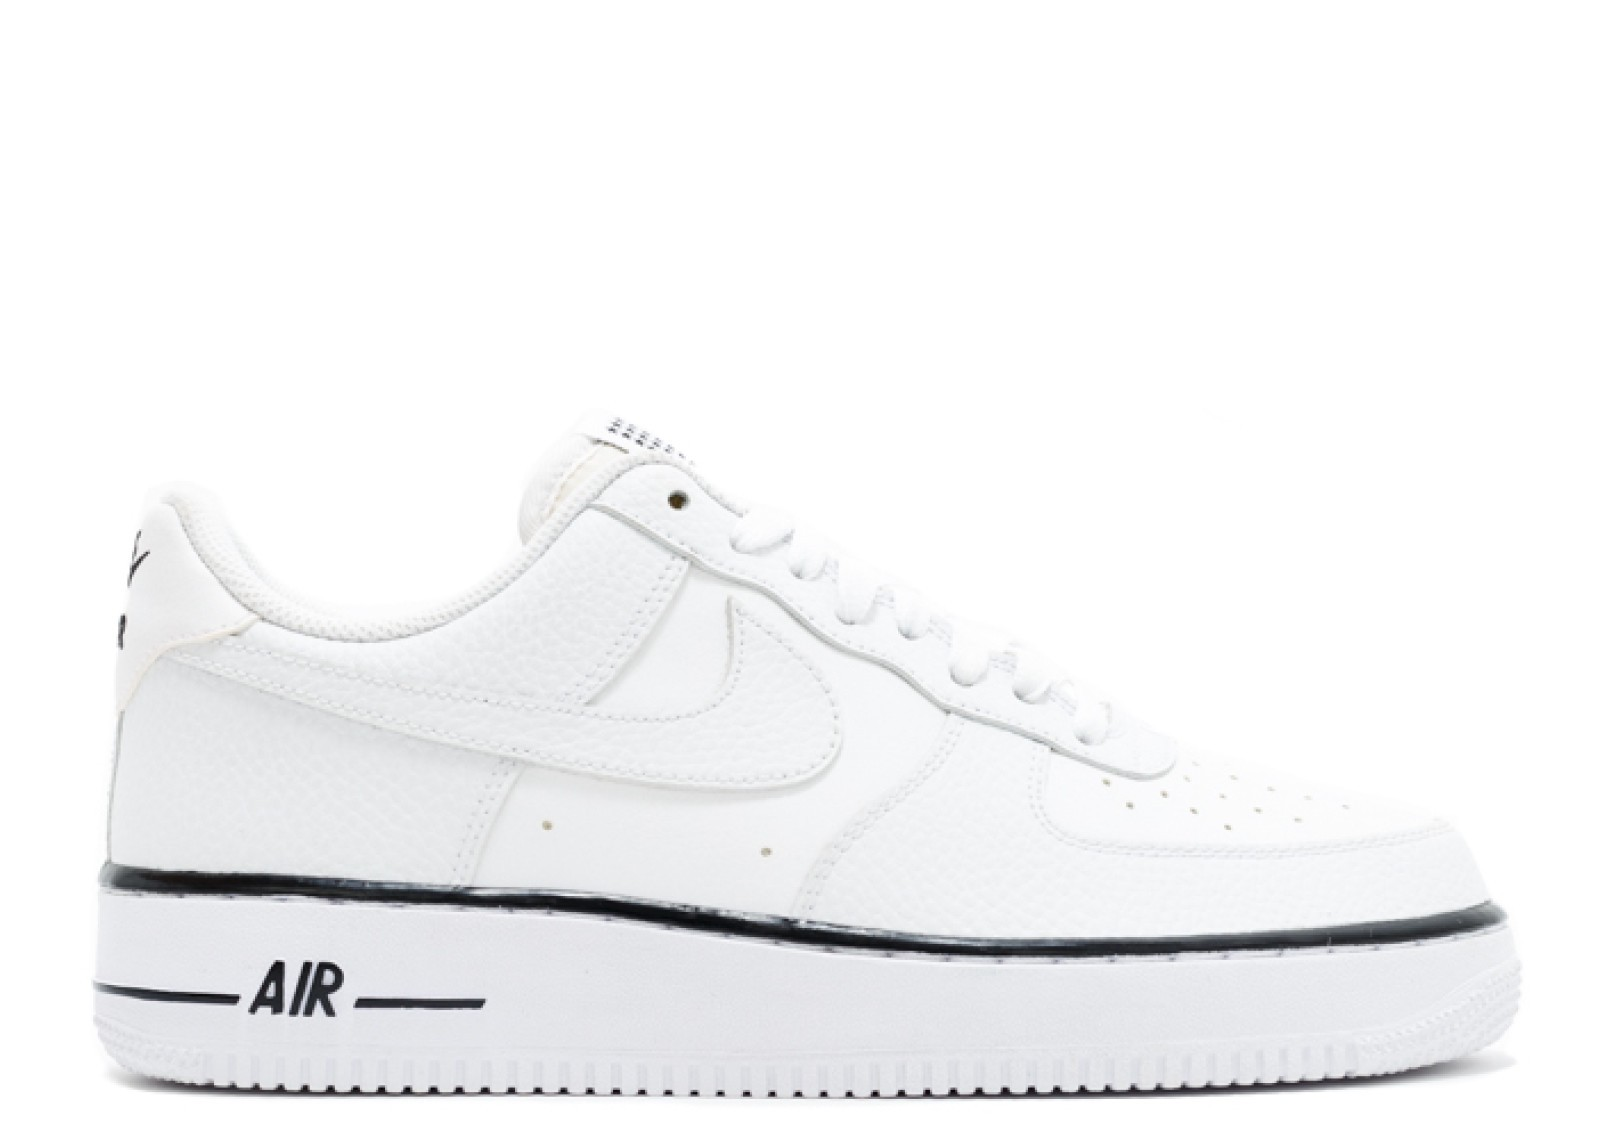 Nike Air Force 1 Low 488298-160 - Blanche/Noir